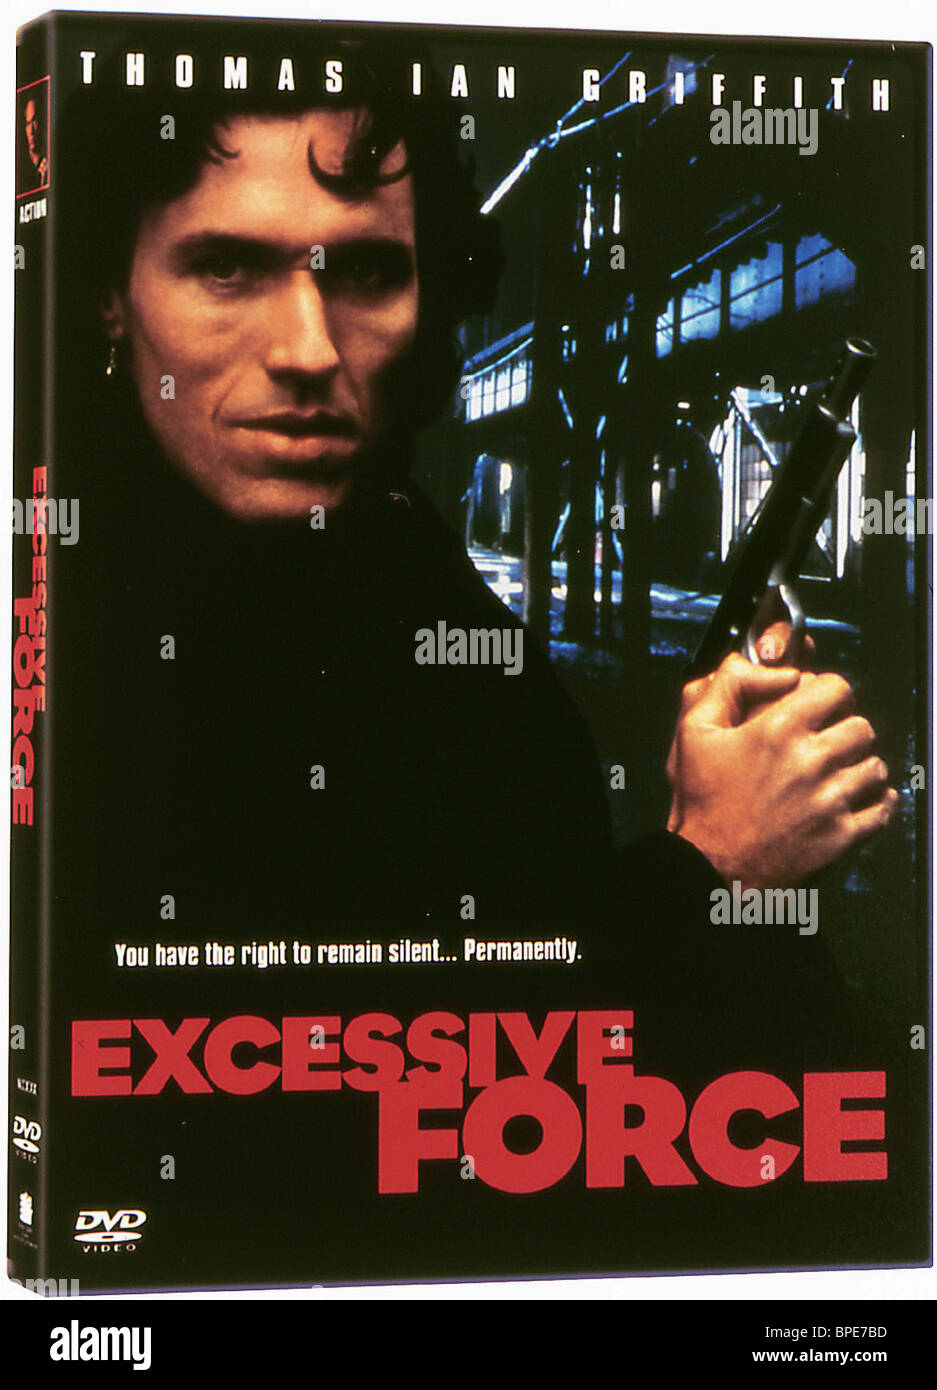 THOMAS IAN GRIFFITH EXCESSIVE FORCE (1993) - Stock Image